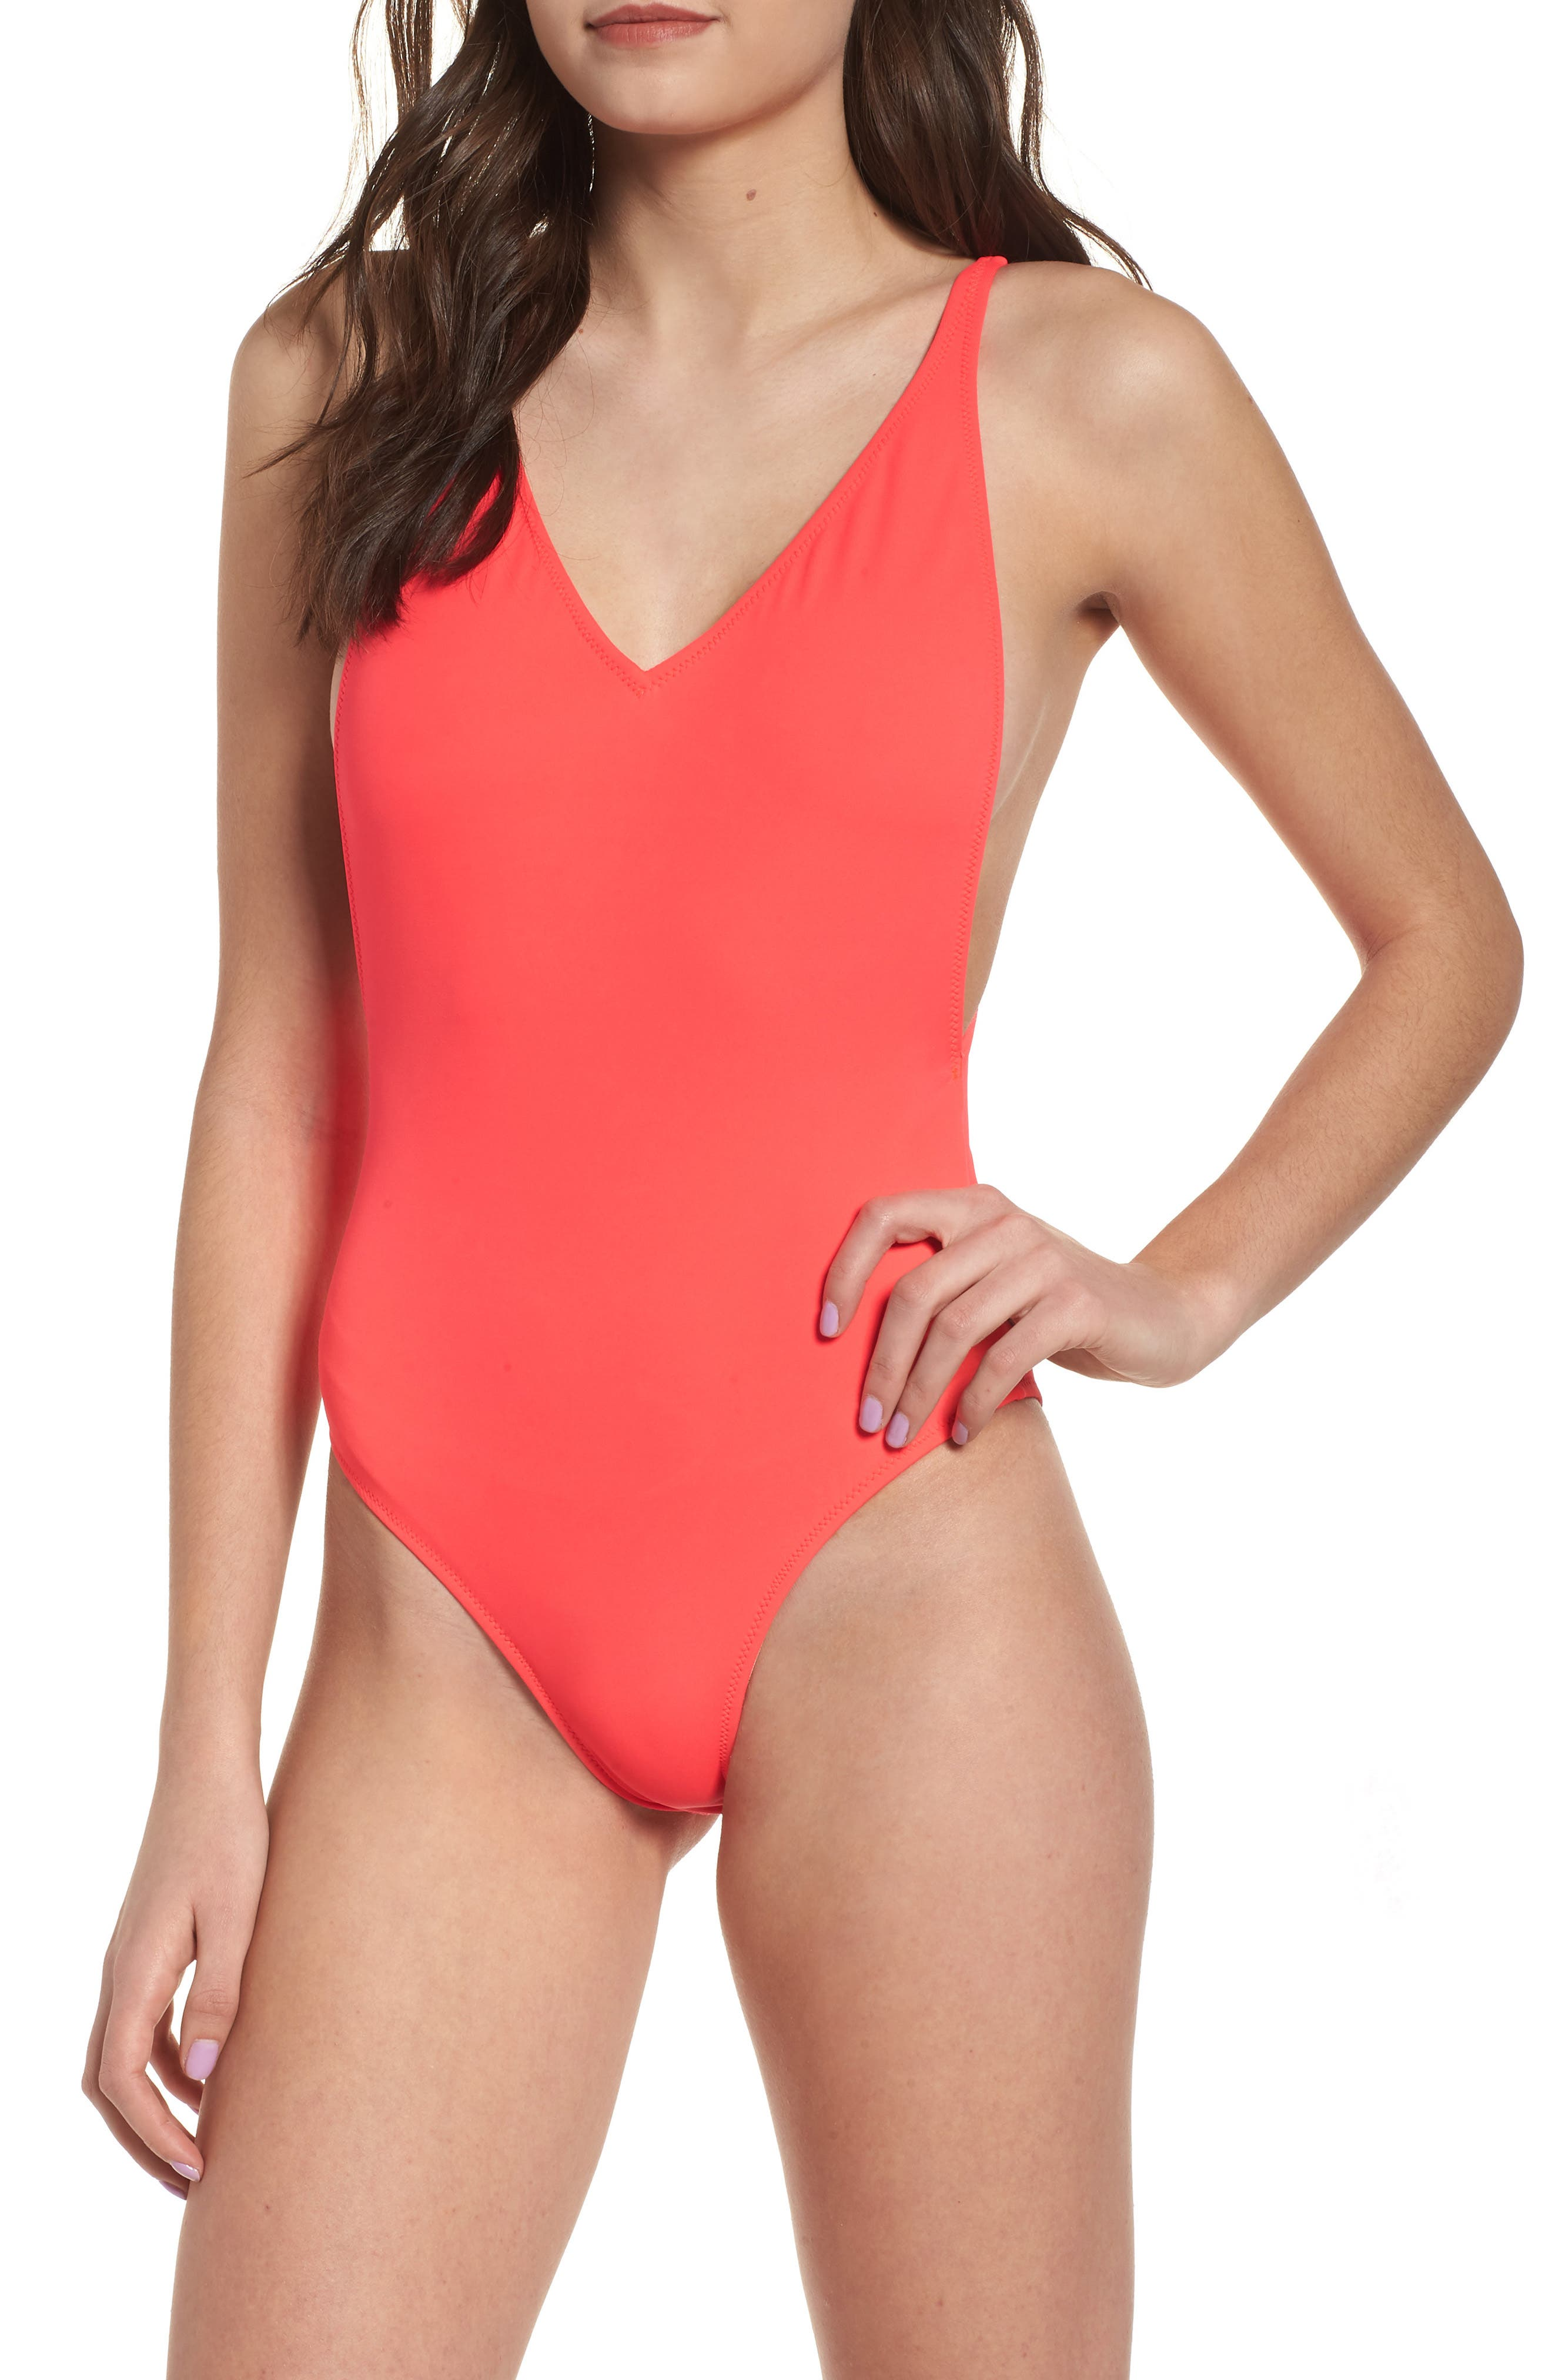 Pamela One-Piece Swimsuit,                         Main,                         color, Red